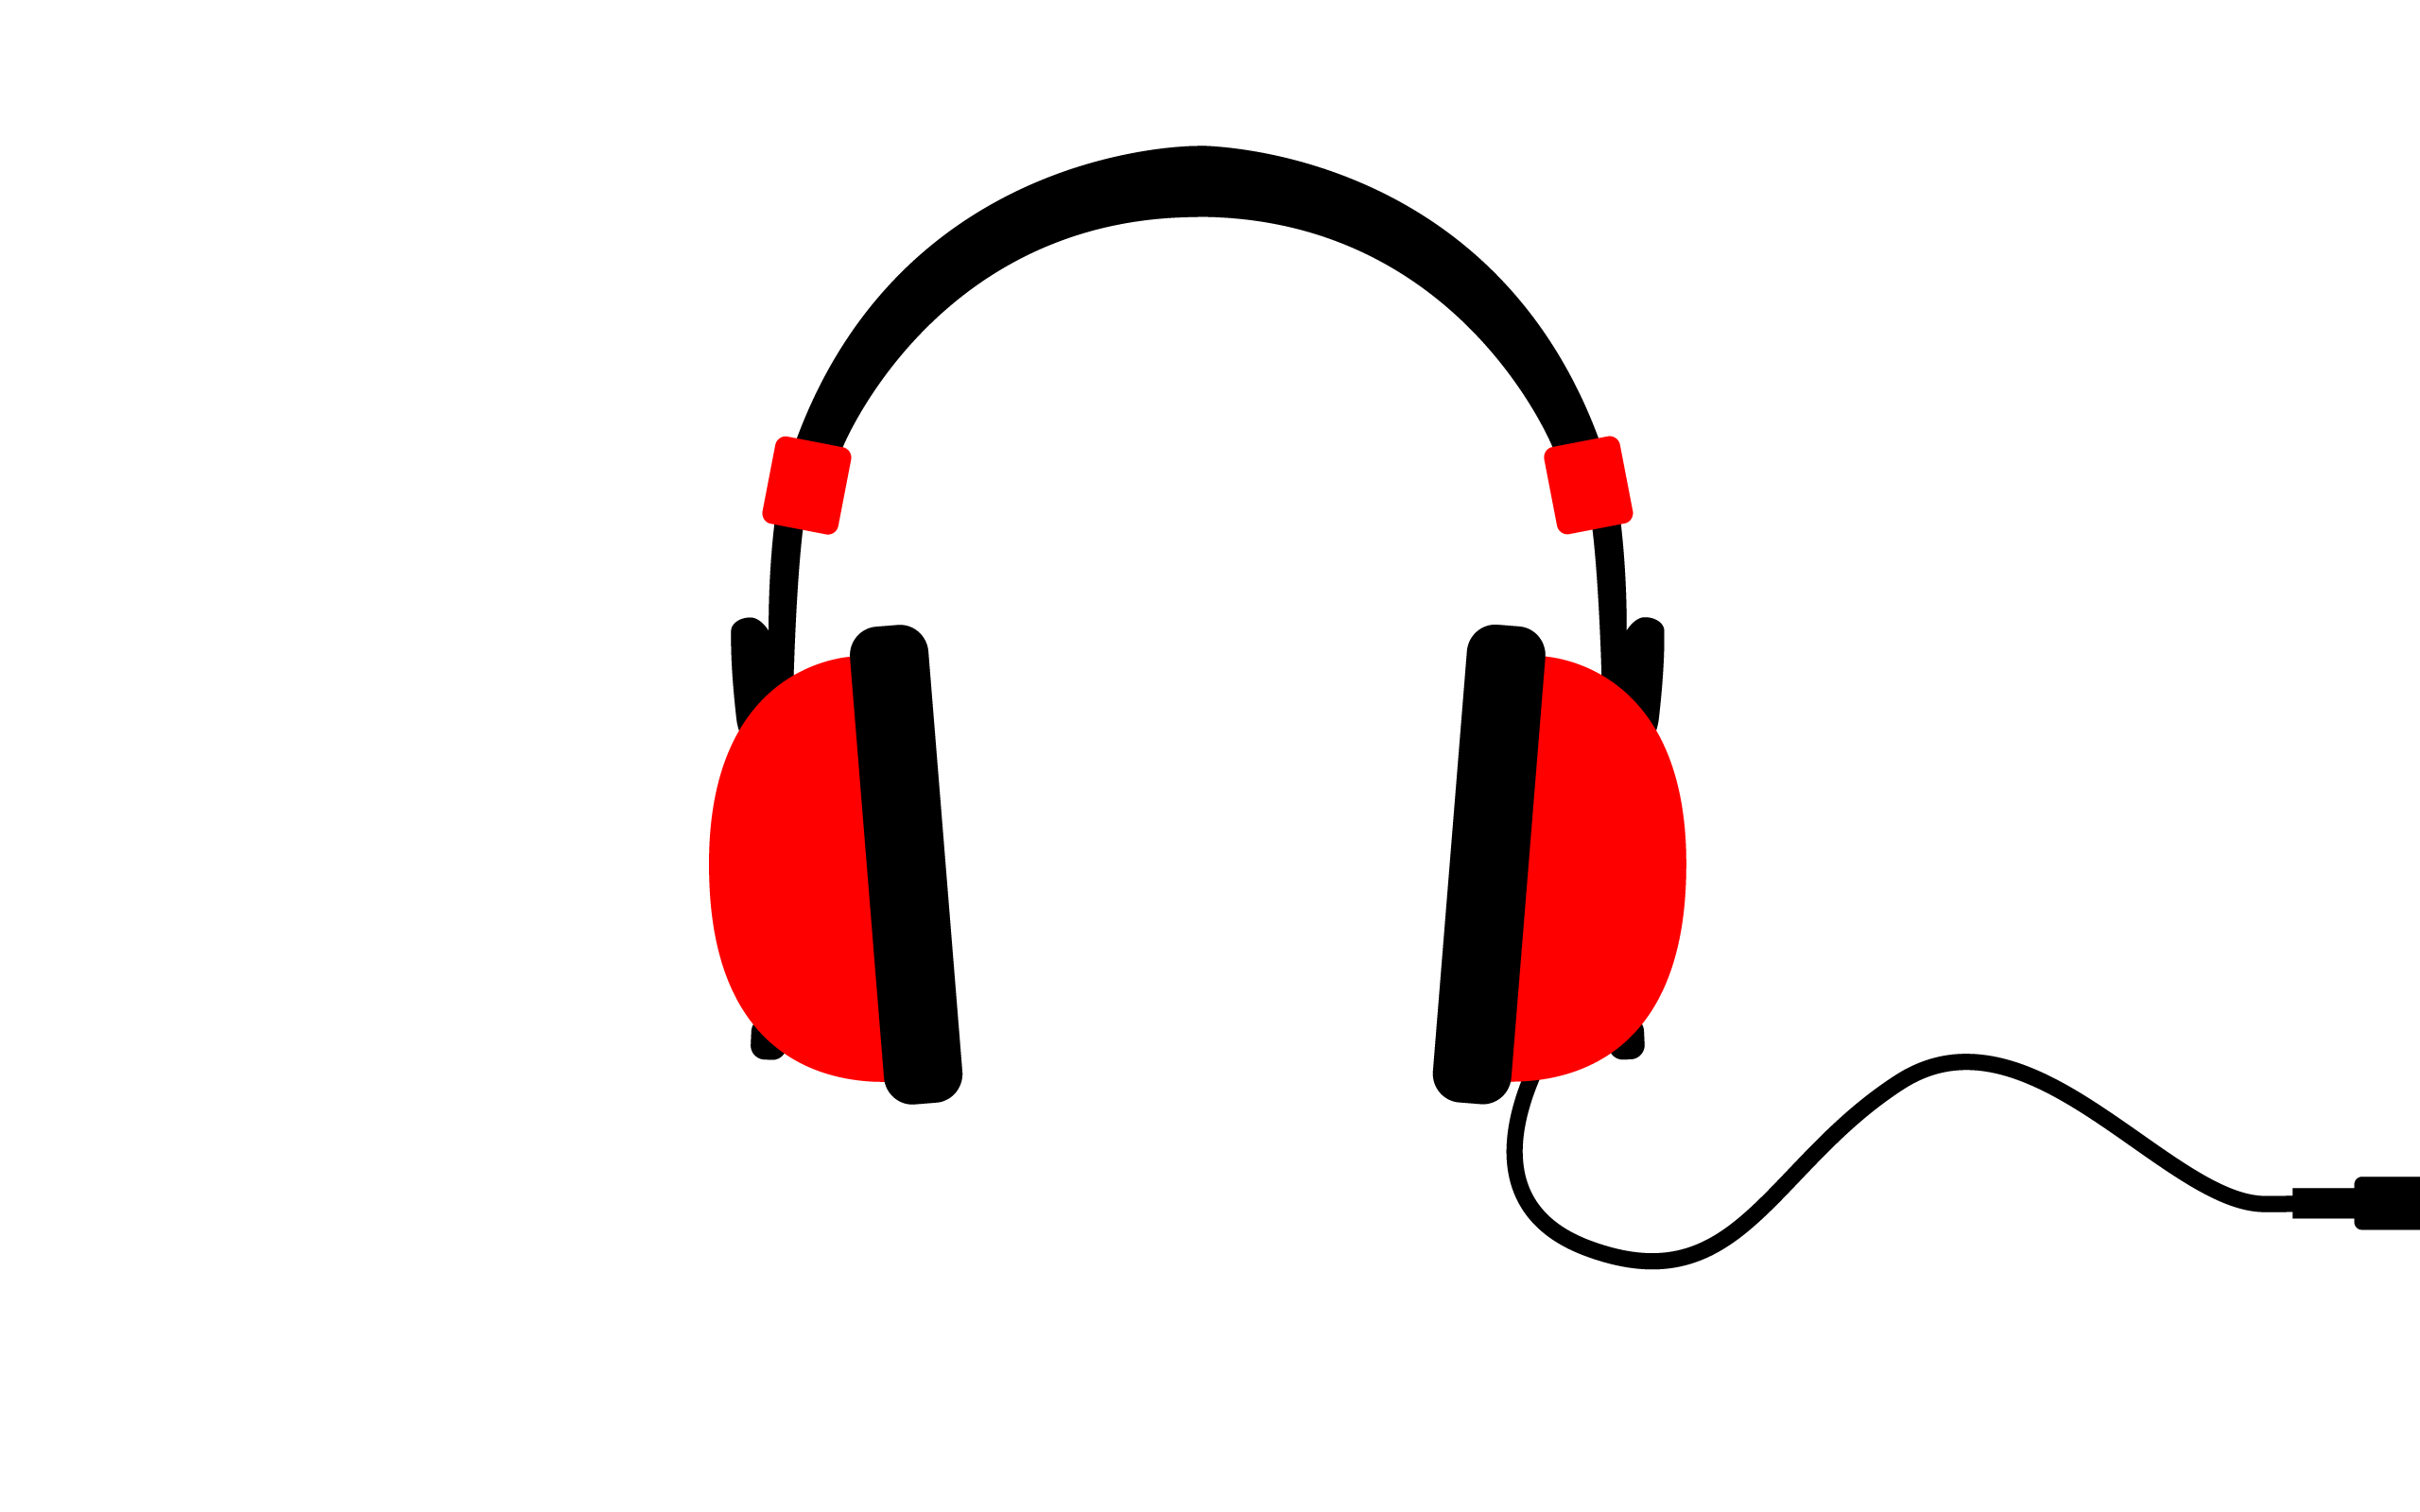 24 earphone png free cliparts that you can download to you computer - Free Headphones Minimalistic Wallpaper Resolution 2560 X Tags Headphones Minimalistic Music Simple